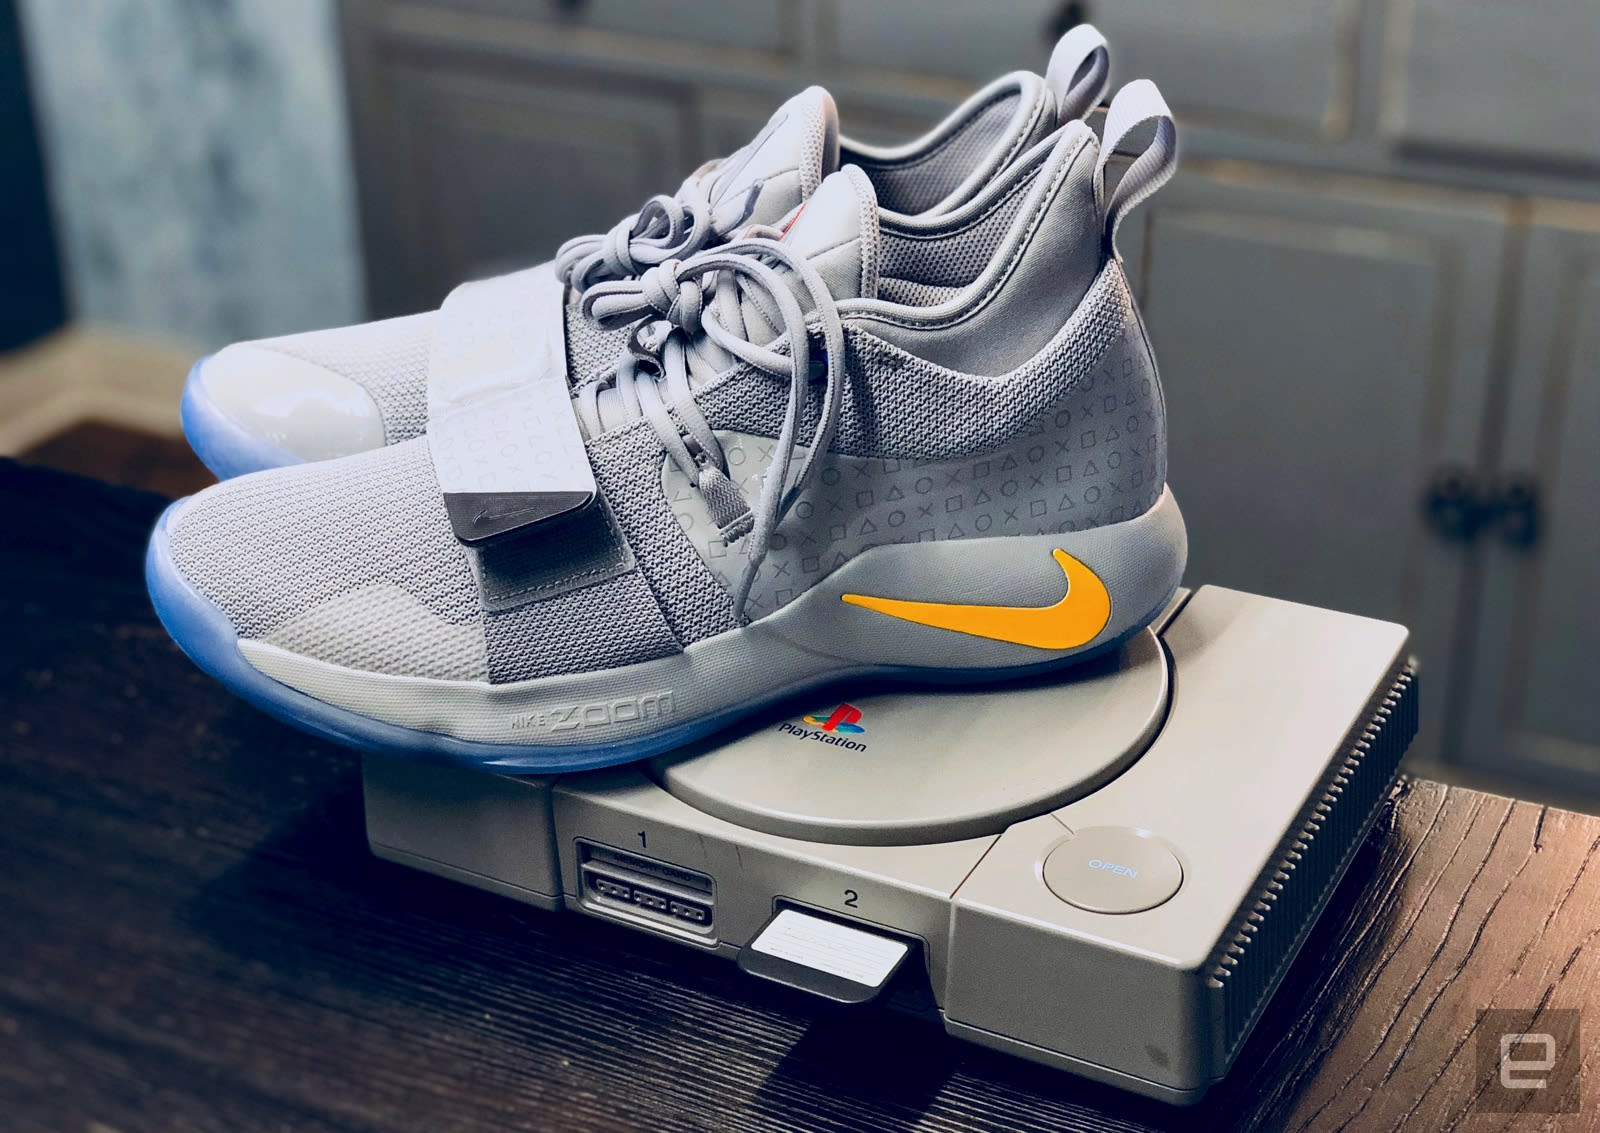 2faa7dab38ed9f Nike s new PlayStation sneakers pay homage to Sony s classic console